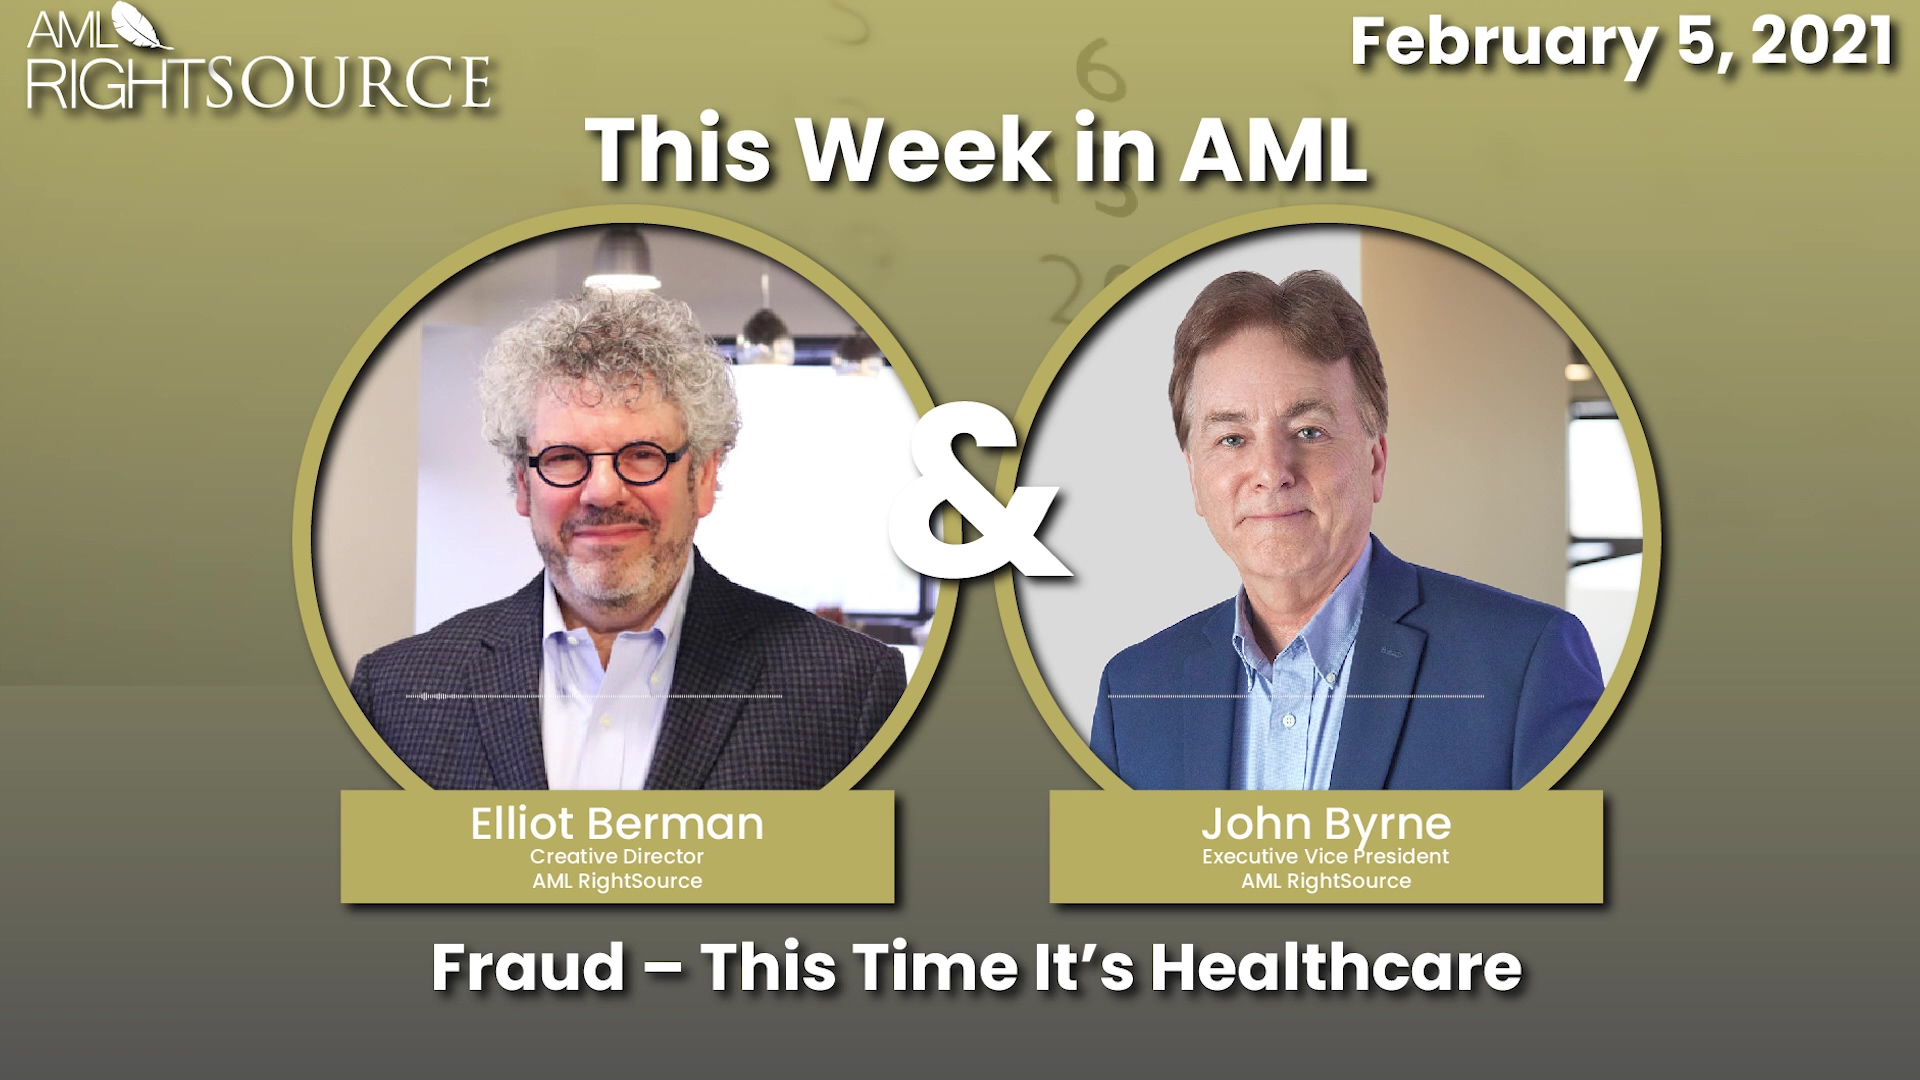 Fraud – This Time It's Healthcare